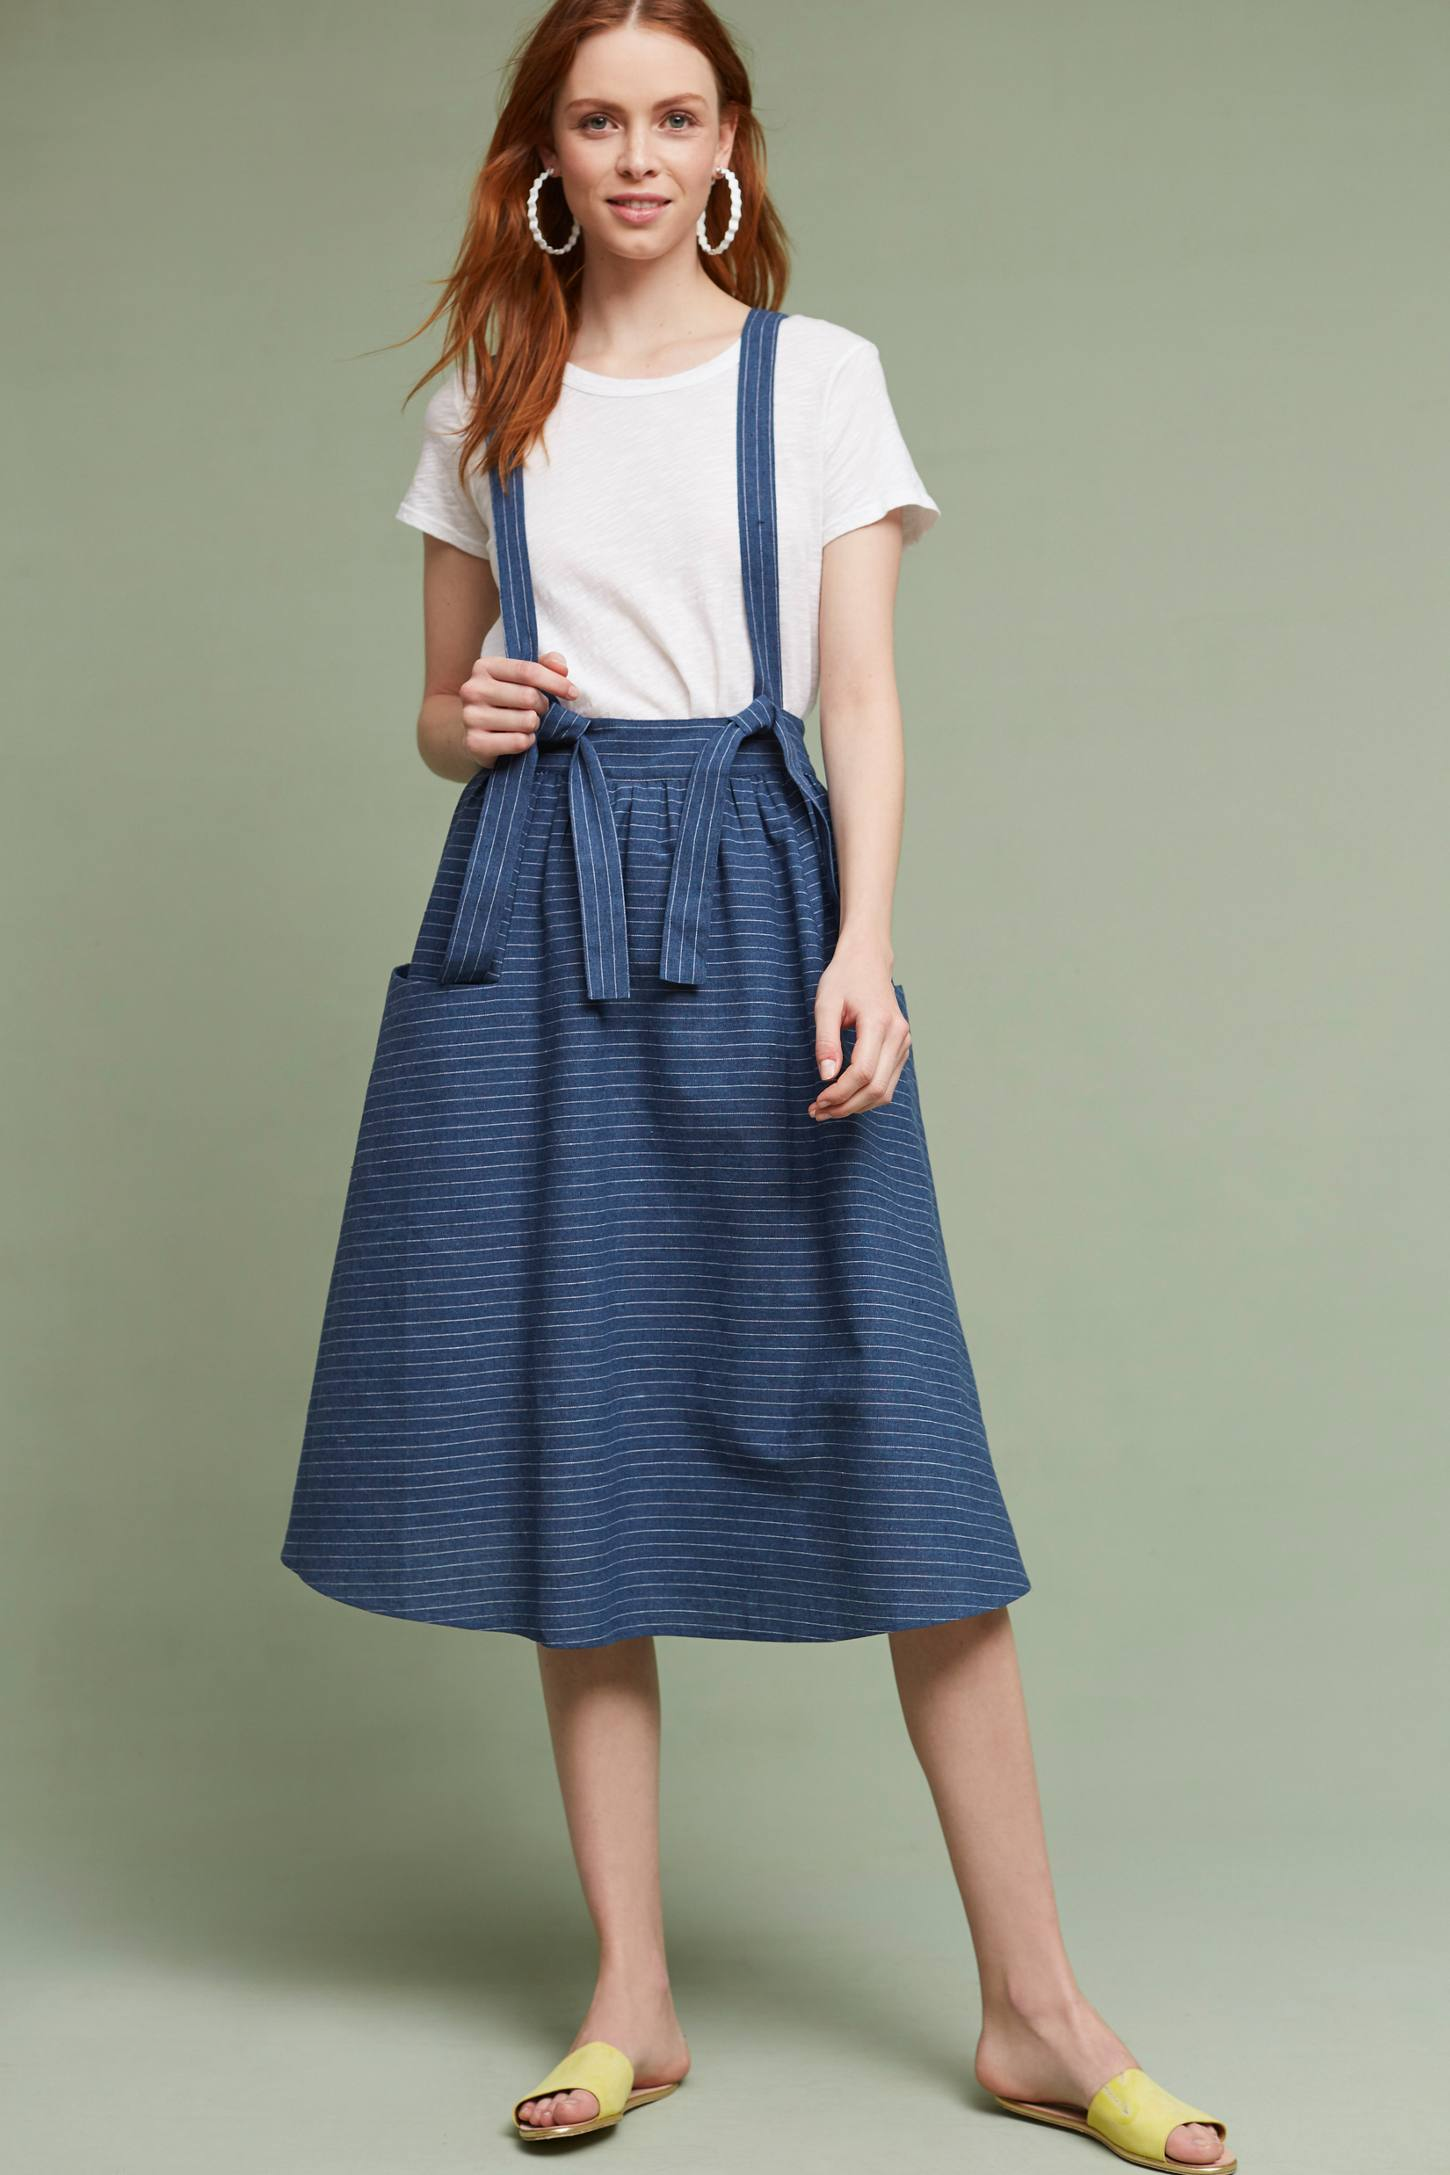 Slide View: 1: Regina Suspender Skirt, Blue